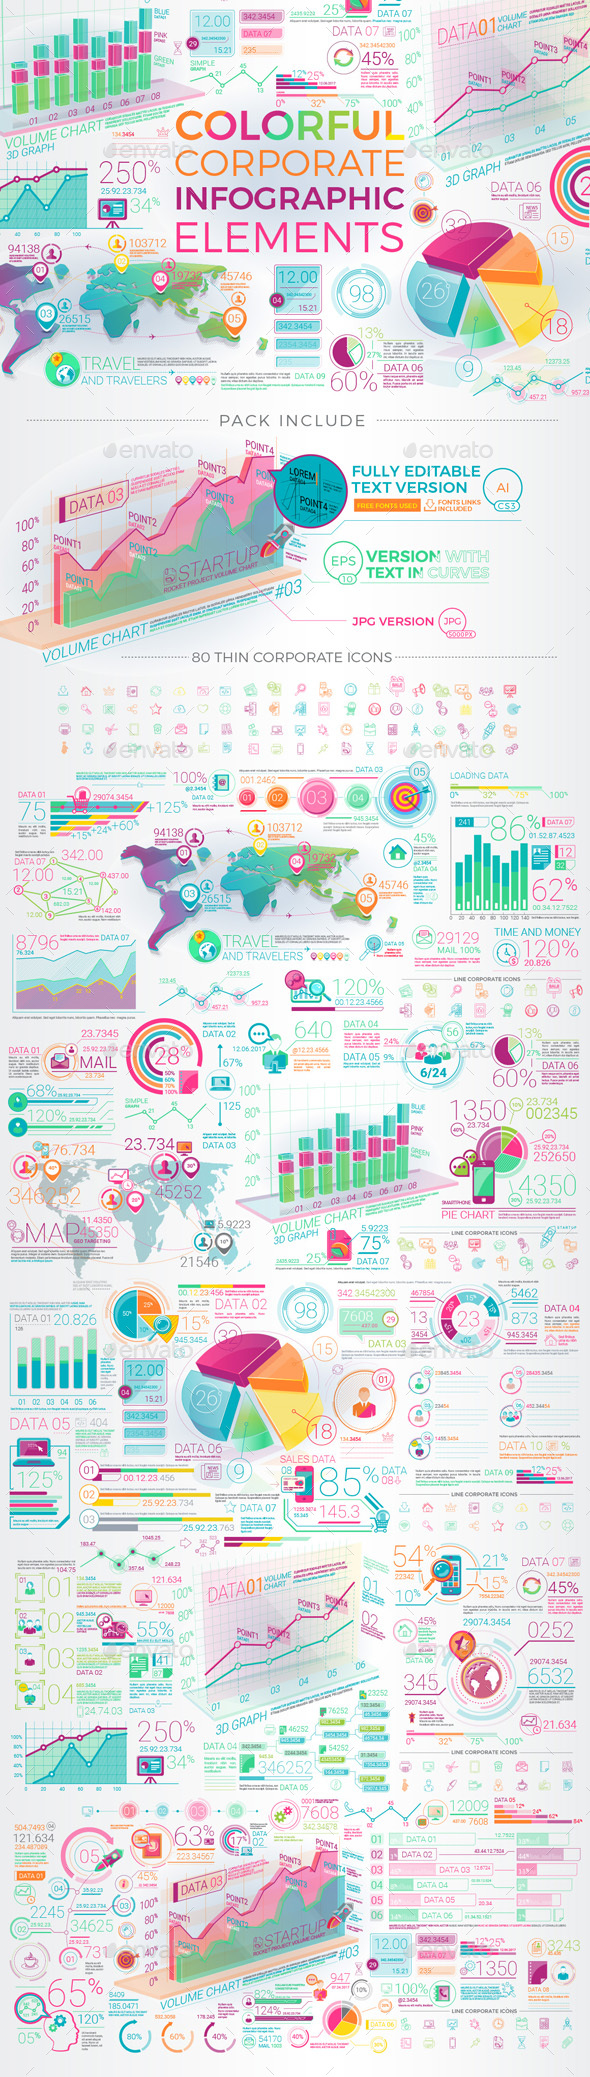 Colorful Corporate Infographic Elements - Infographics